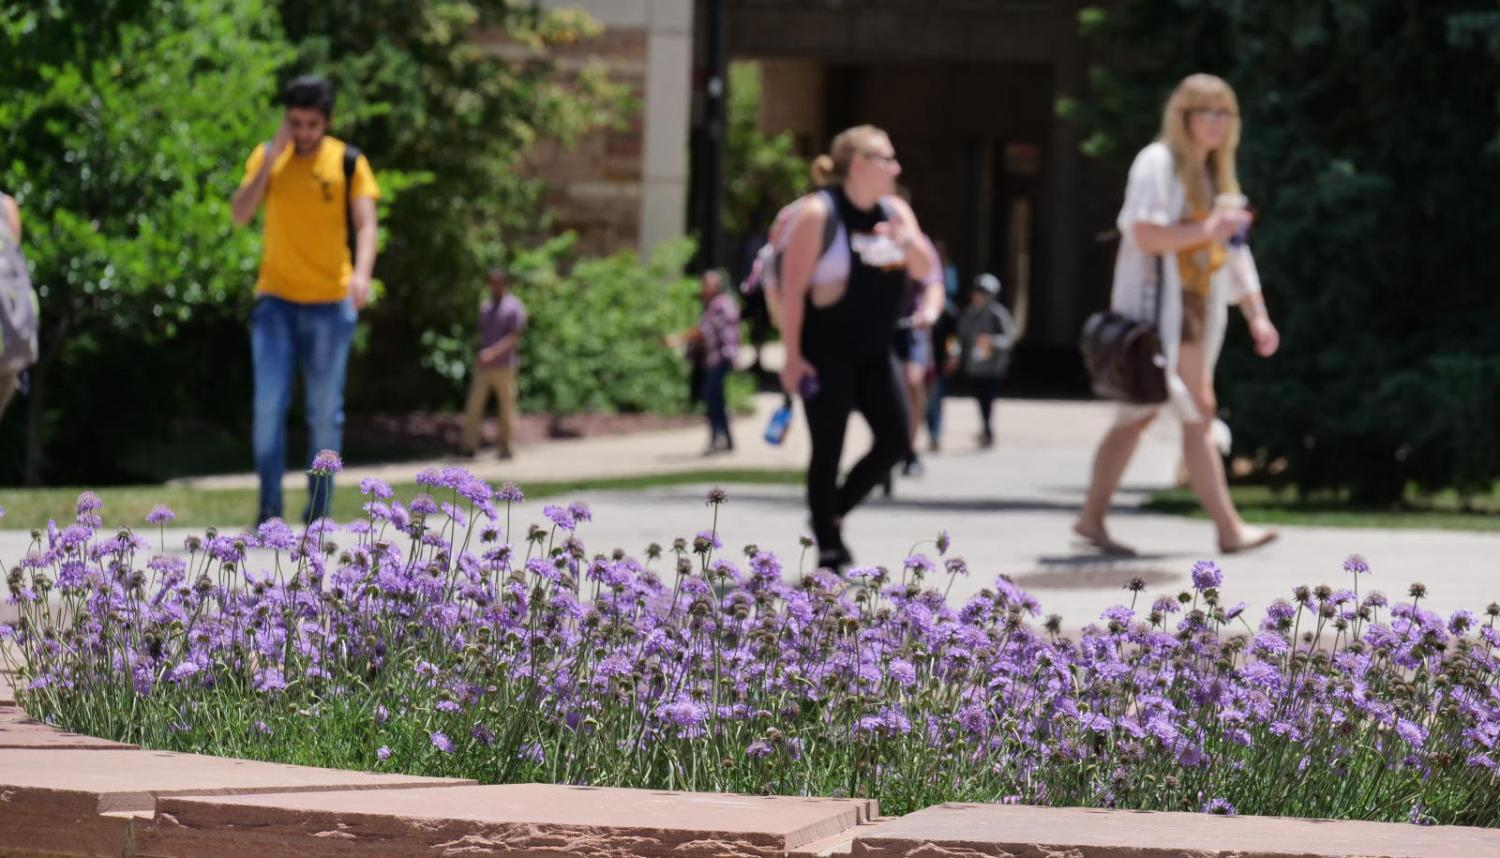 Students walk outside on campus with flowers blooming